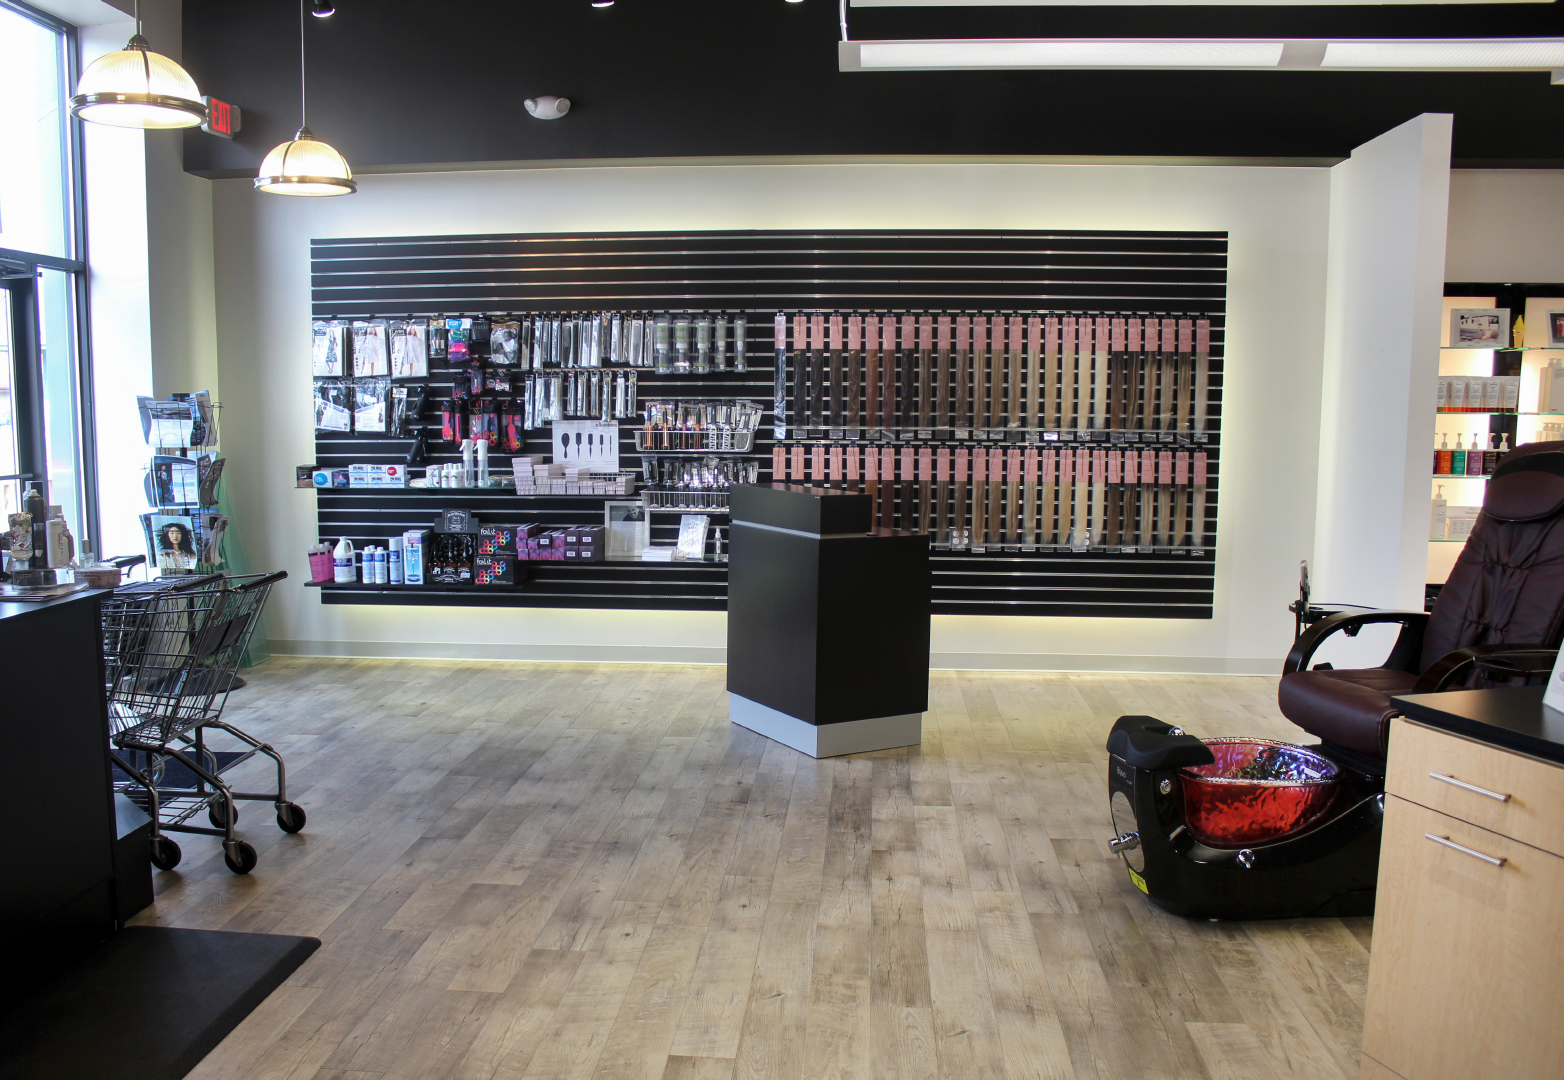 Hair salon displaying hair products along wall including hair extensions.